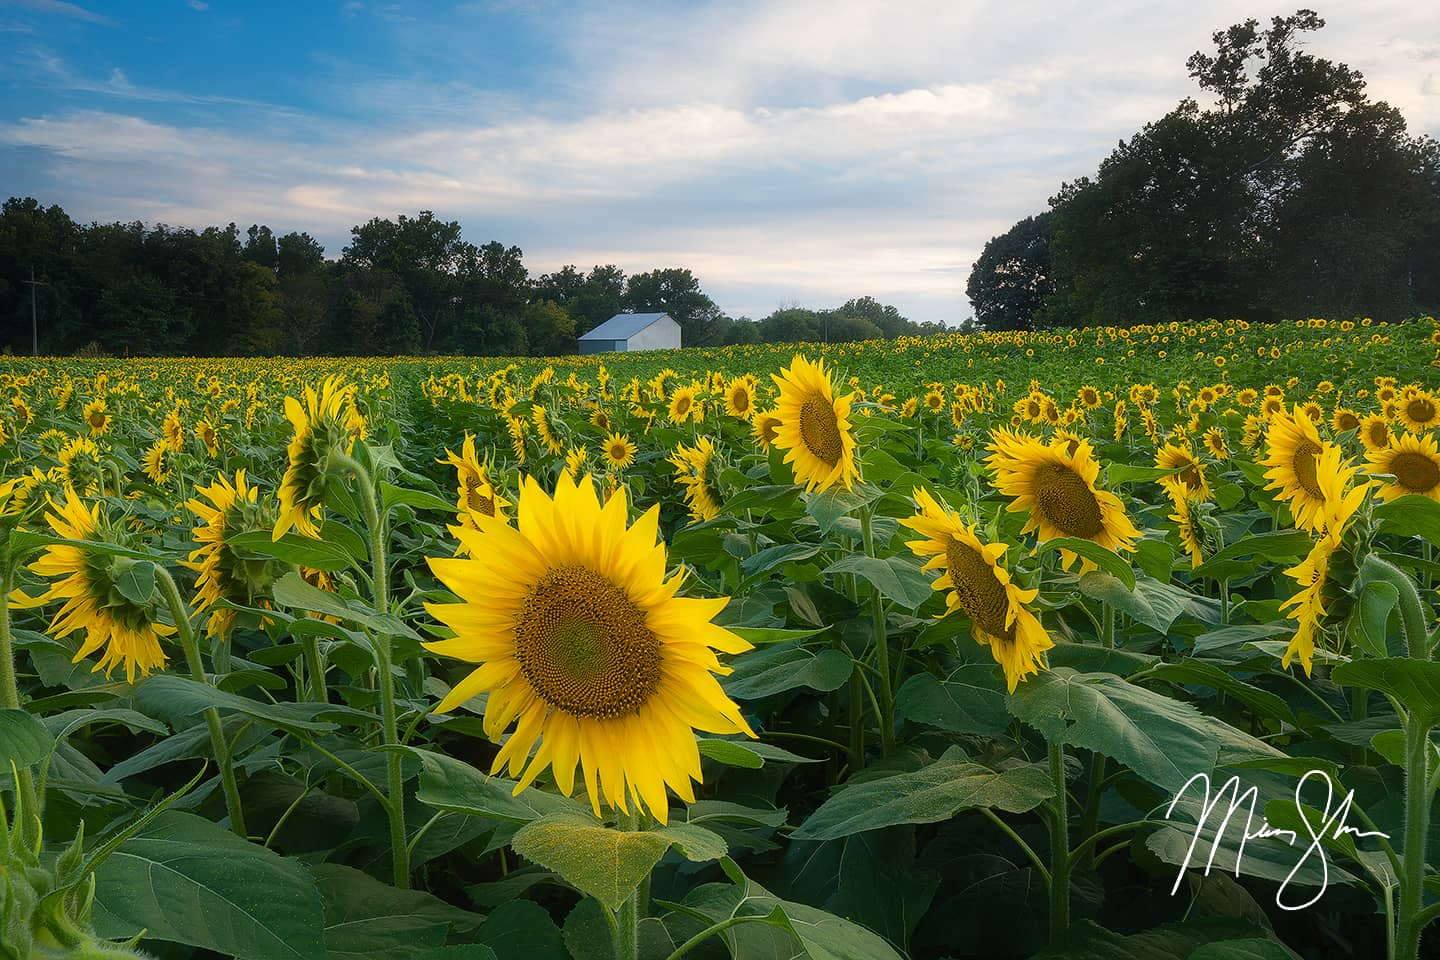 Grinter Farms Sunflowers - Lawrence, KS